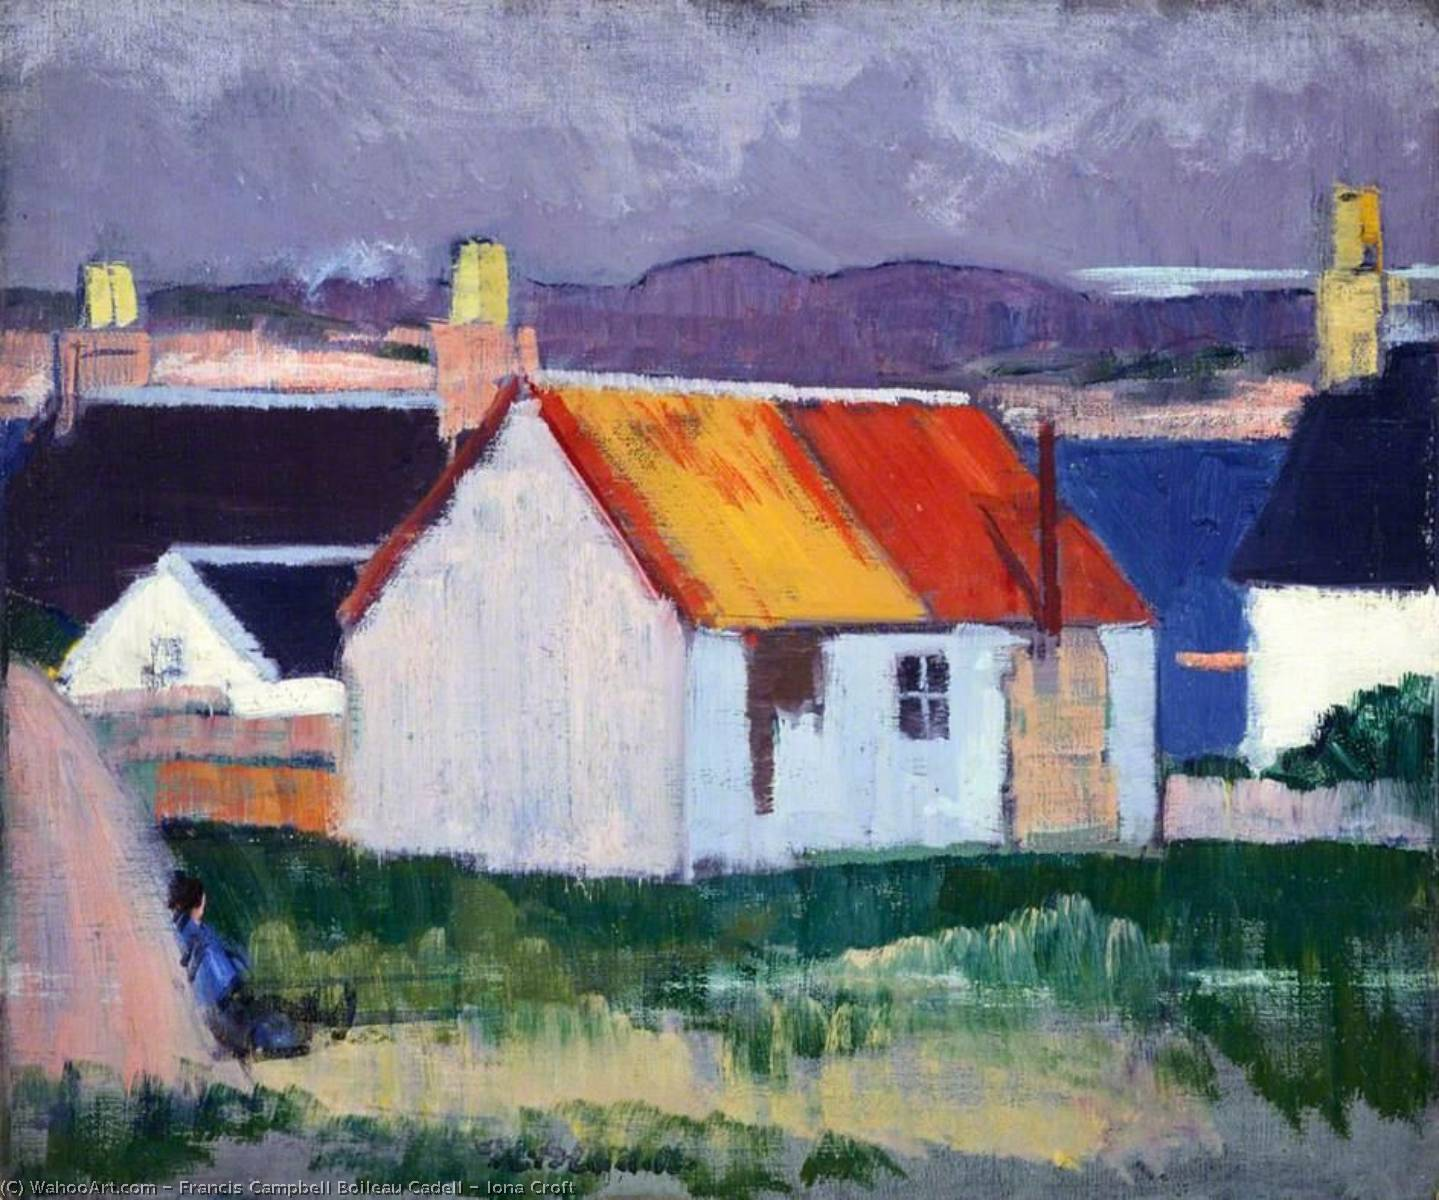 Iona Croft, Oil On Canvas by Francis Campbell Boileau Cadell (1883-1937)